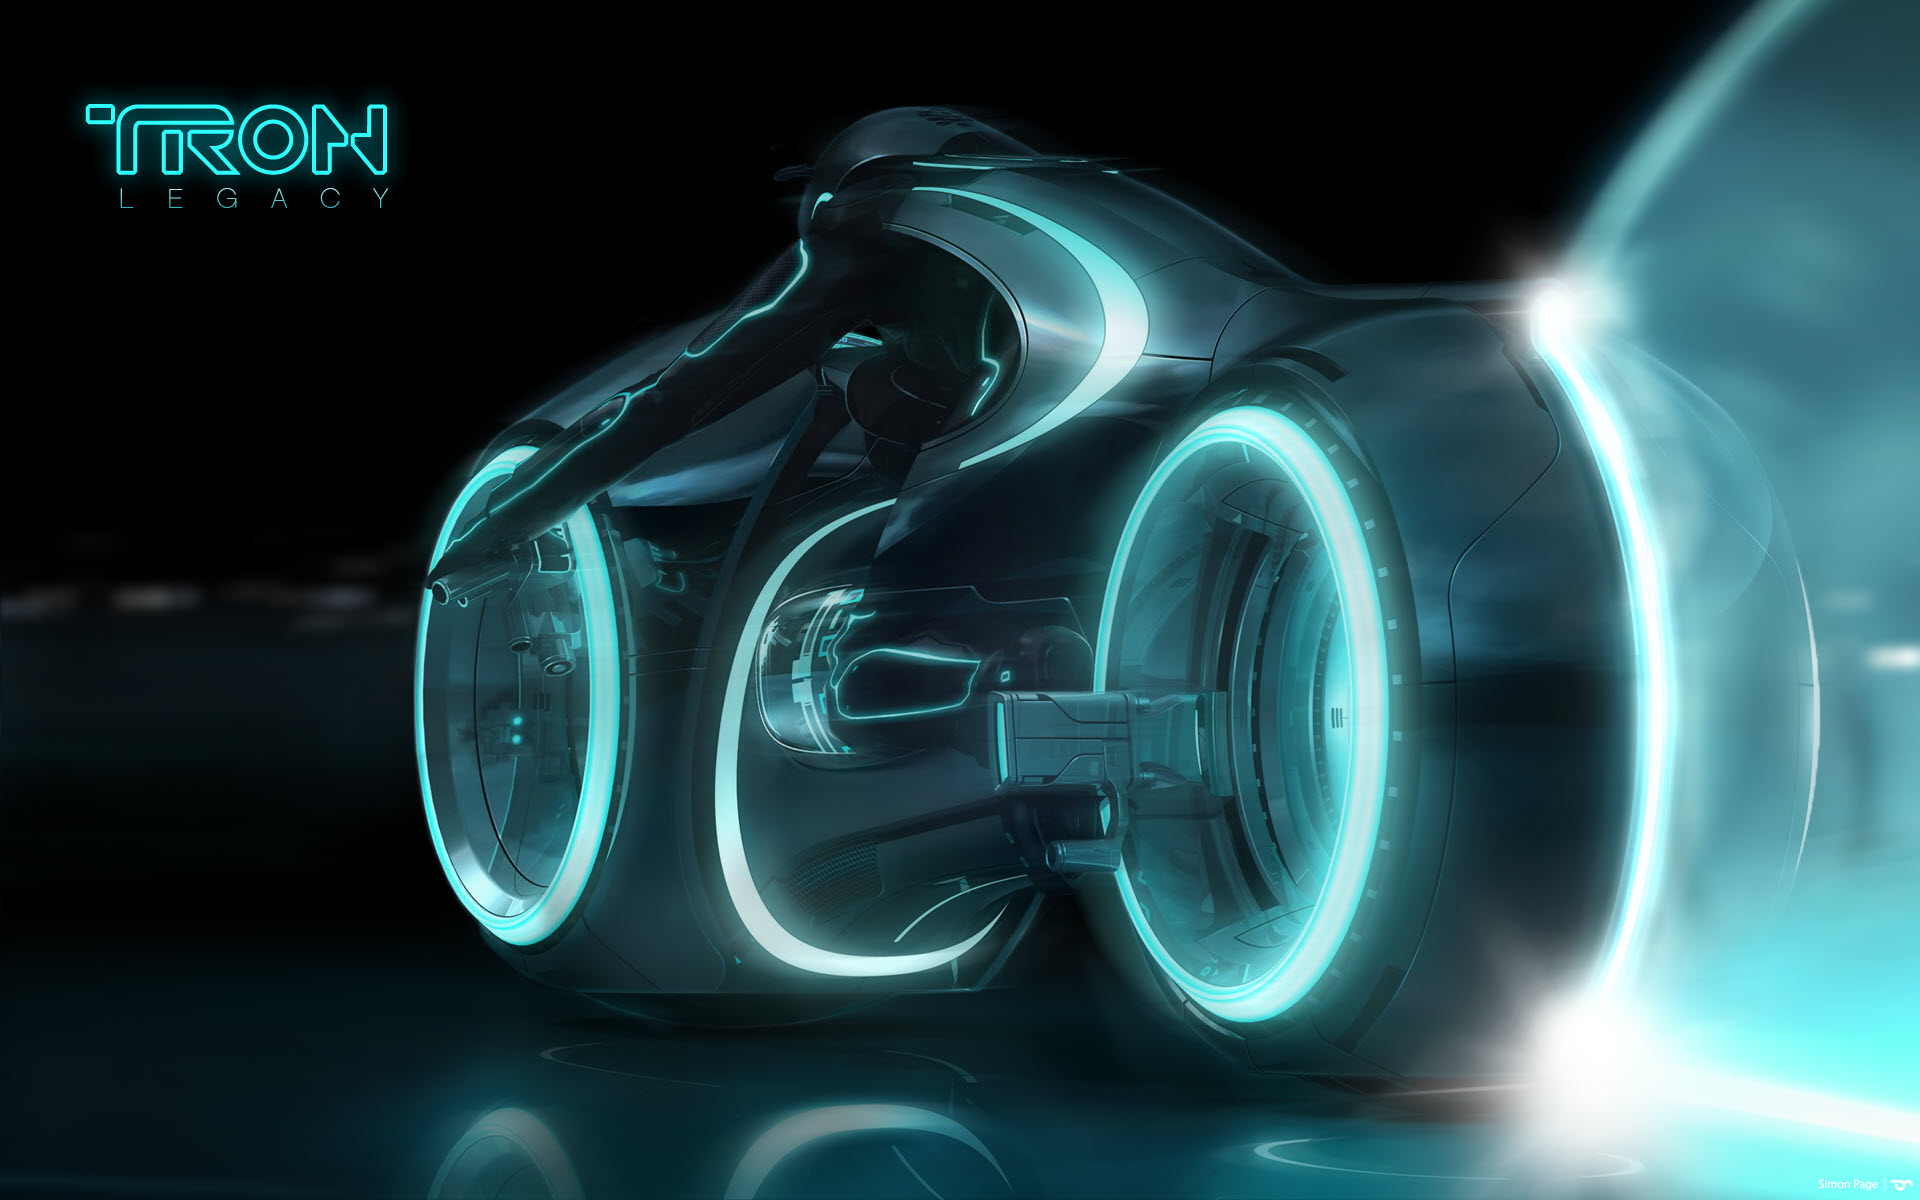 Wallpaper 3d Bike Tron Legacy Download: Wallpaper, High Definition, High